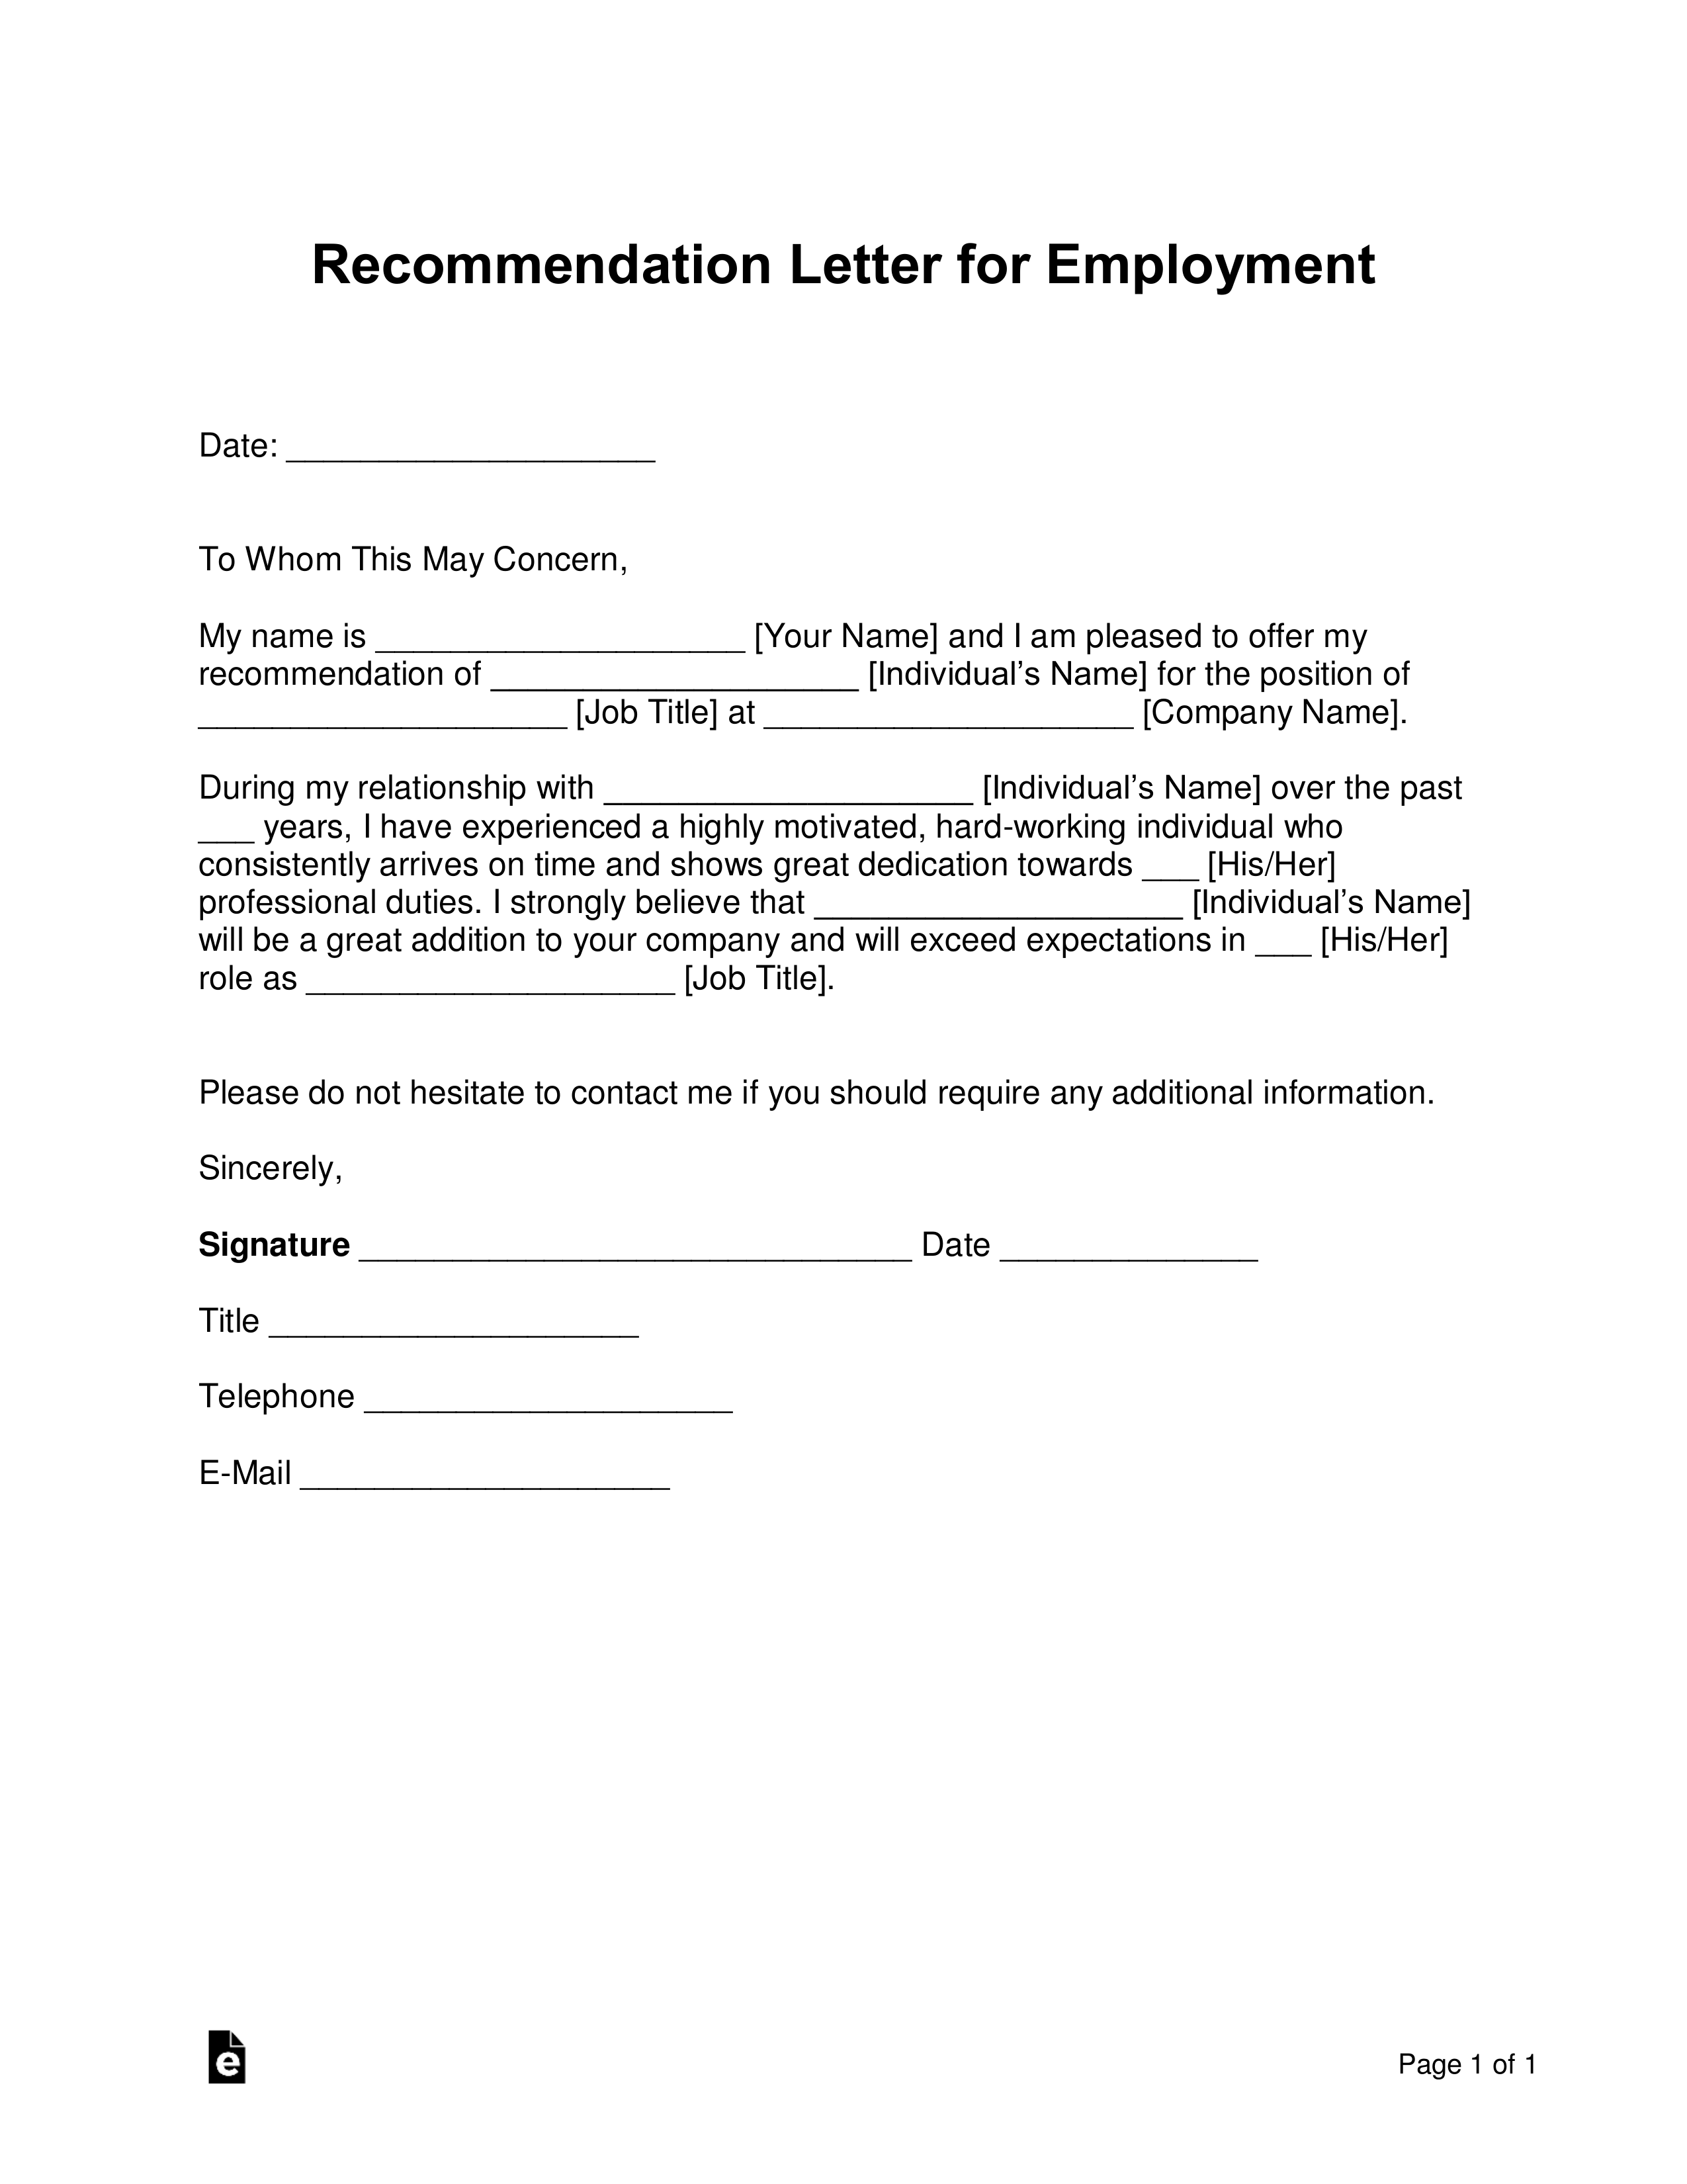 Work Letter Of Recommendation from eforms.com